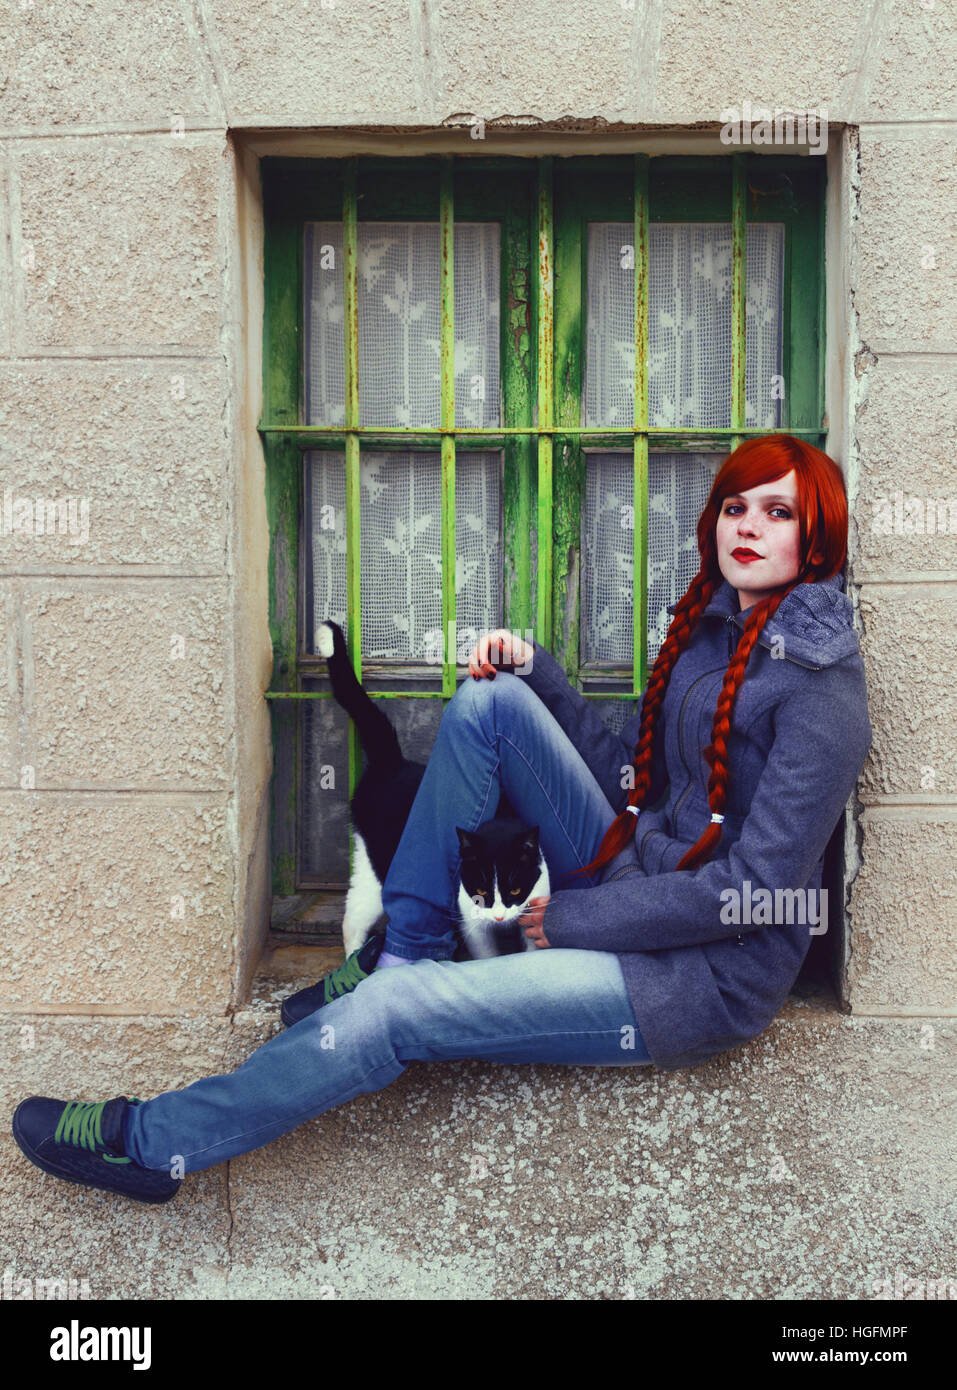 Young redhead woman, with two long braids, sitting near a old window - Stock Image